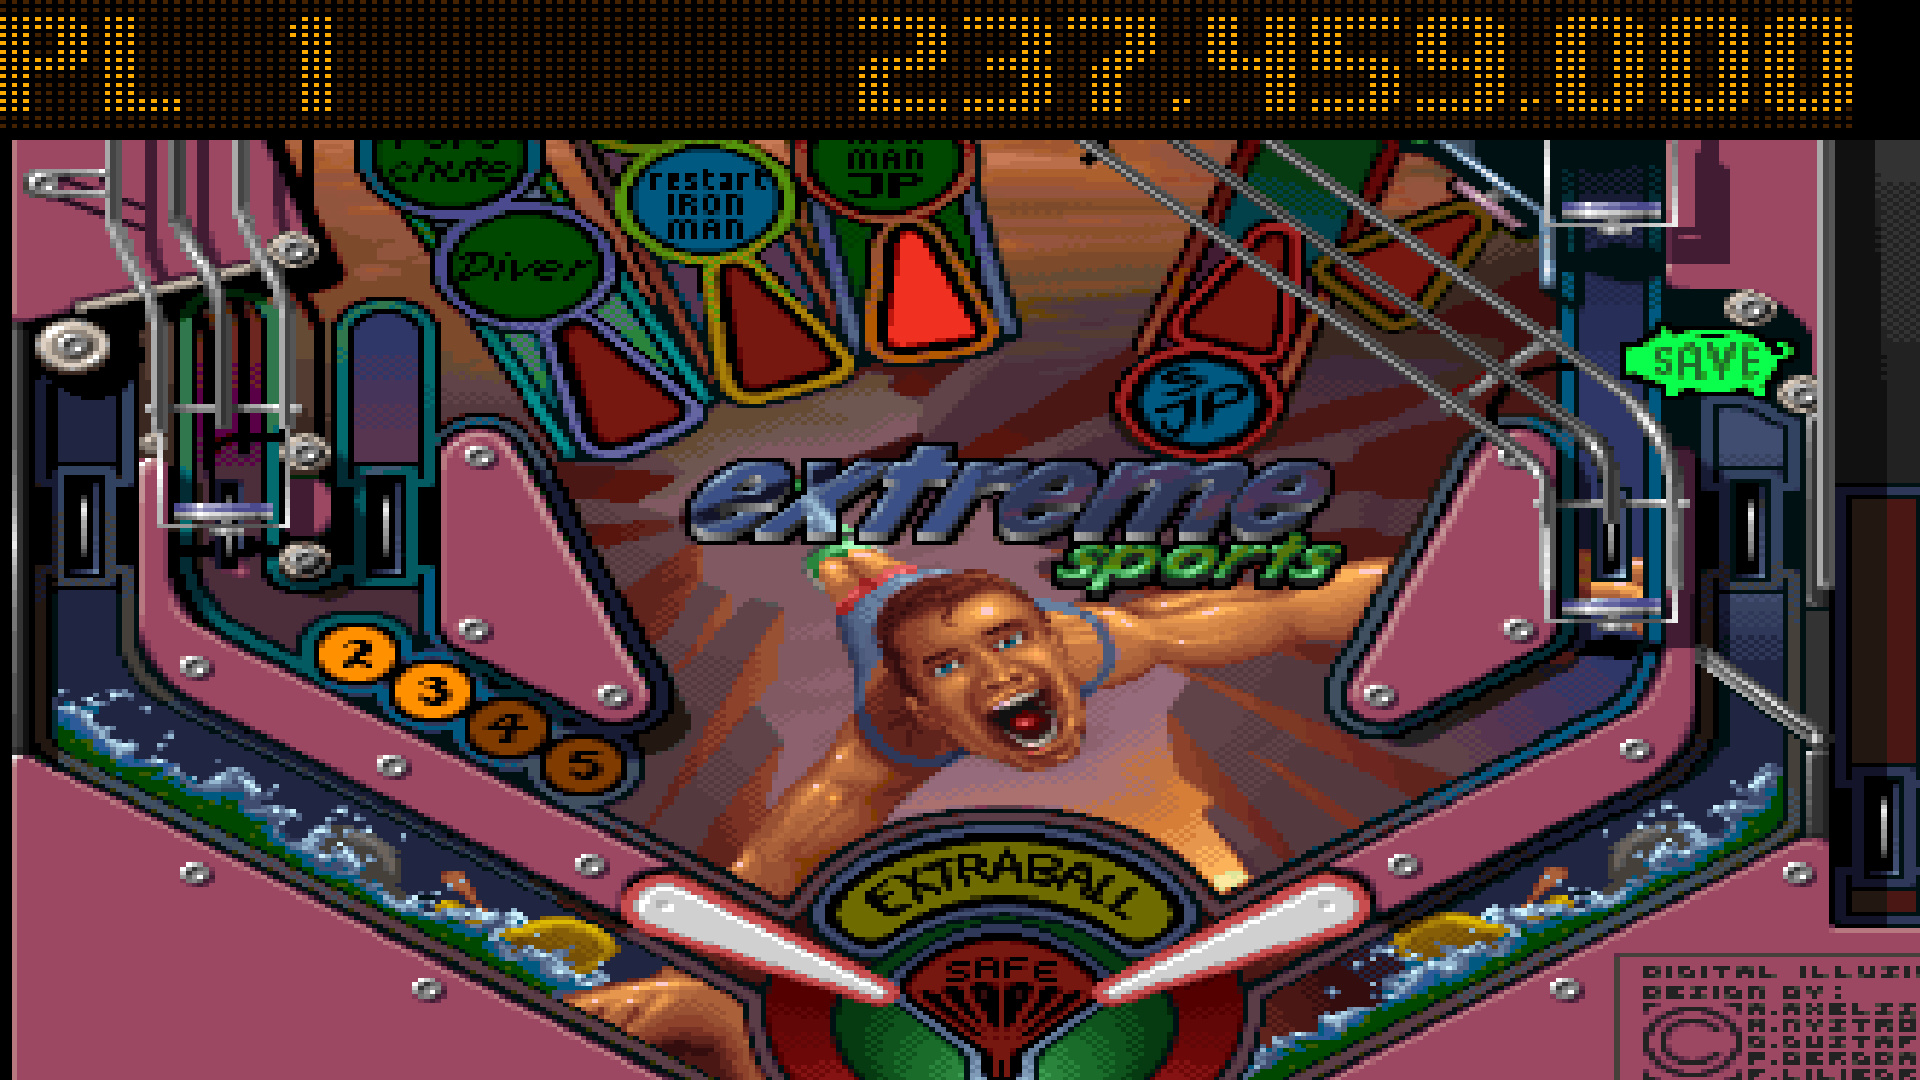 Pinball Illusions: Extreme Sports 237,459,000 points